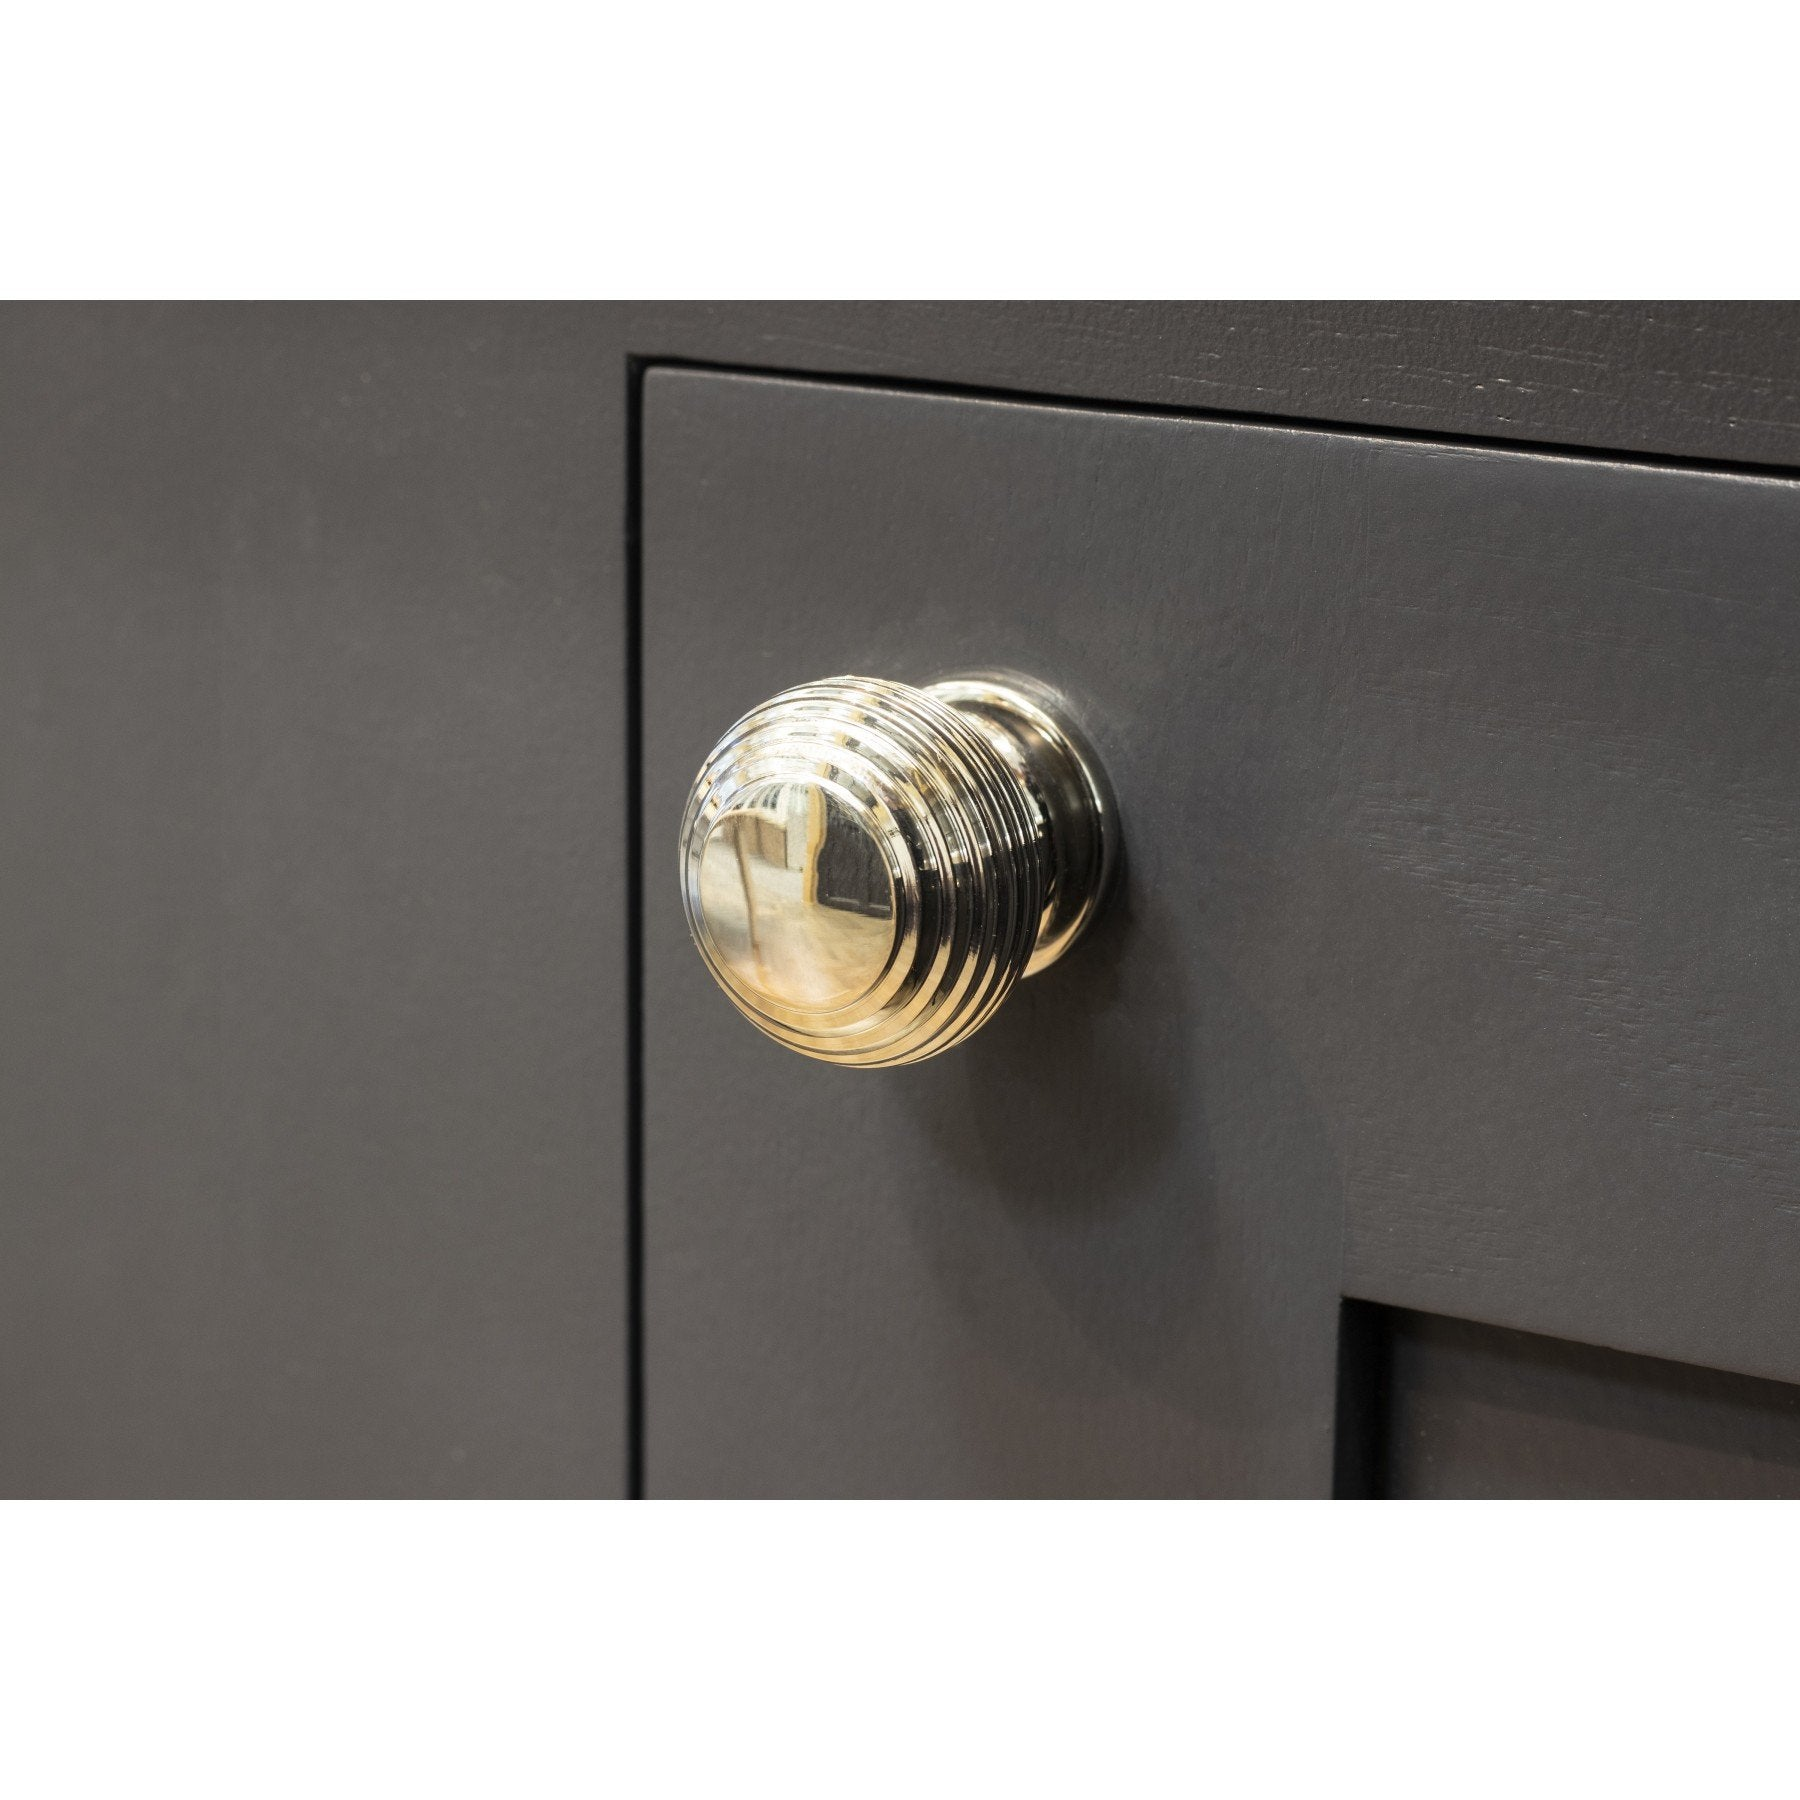 Polished Nickel Beehive Cabinet Knob - Small